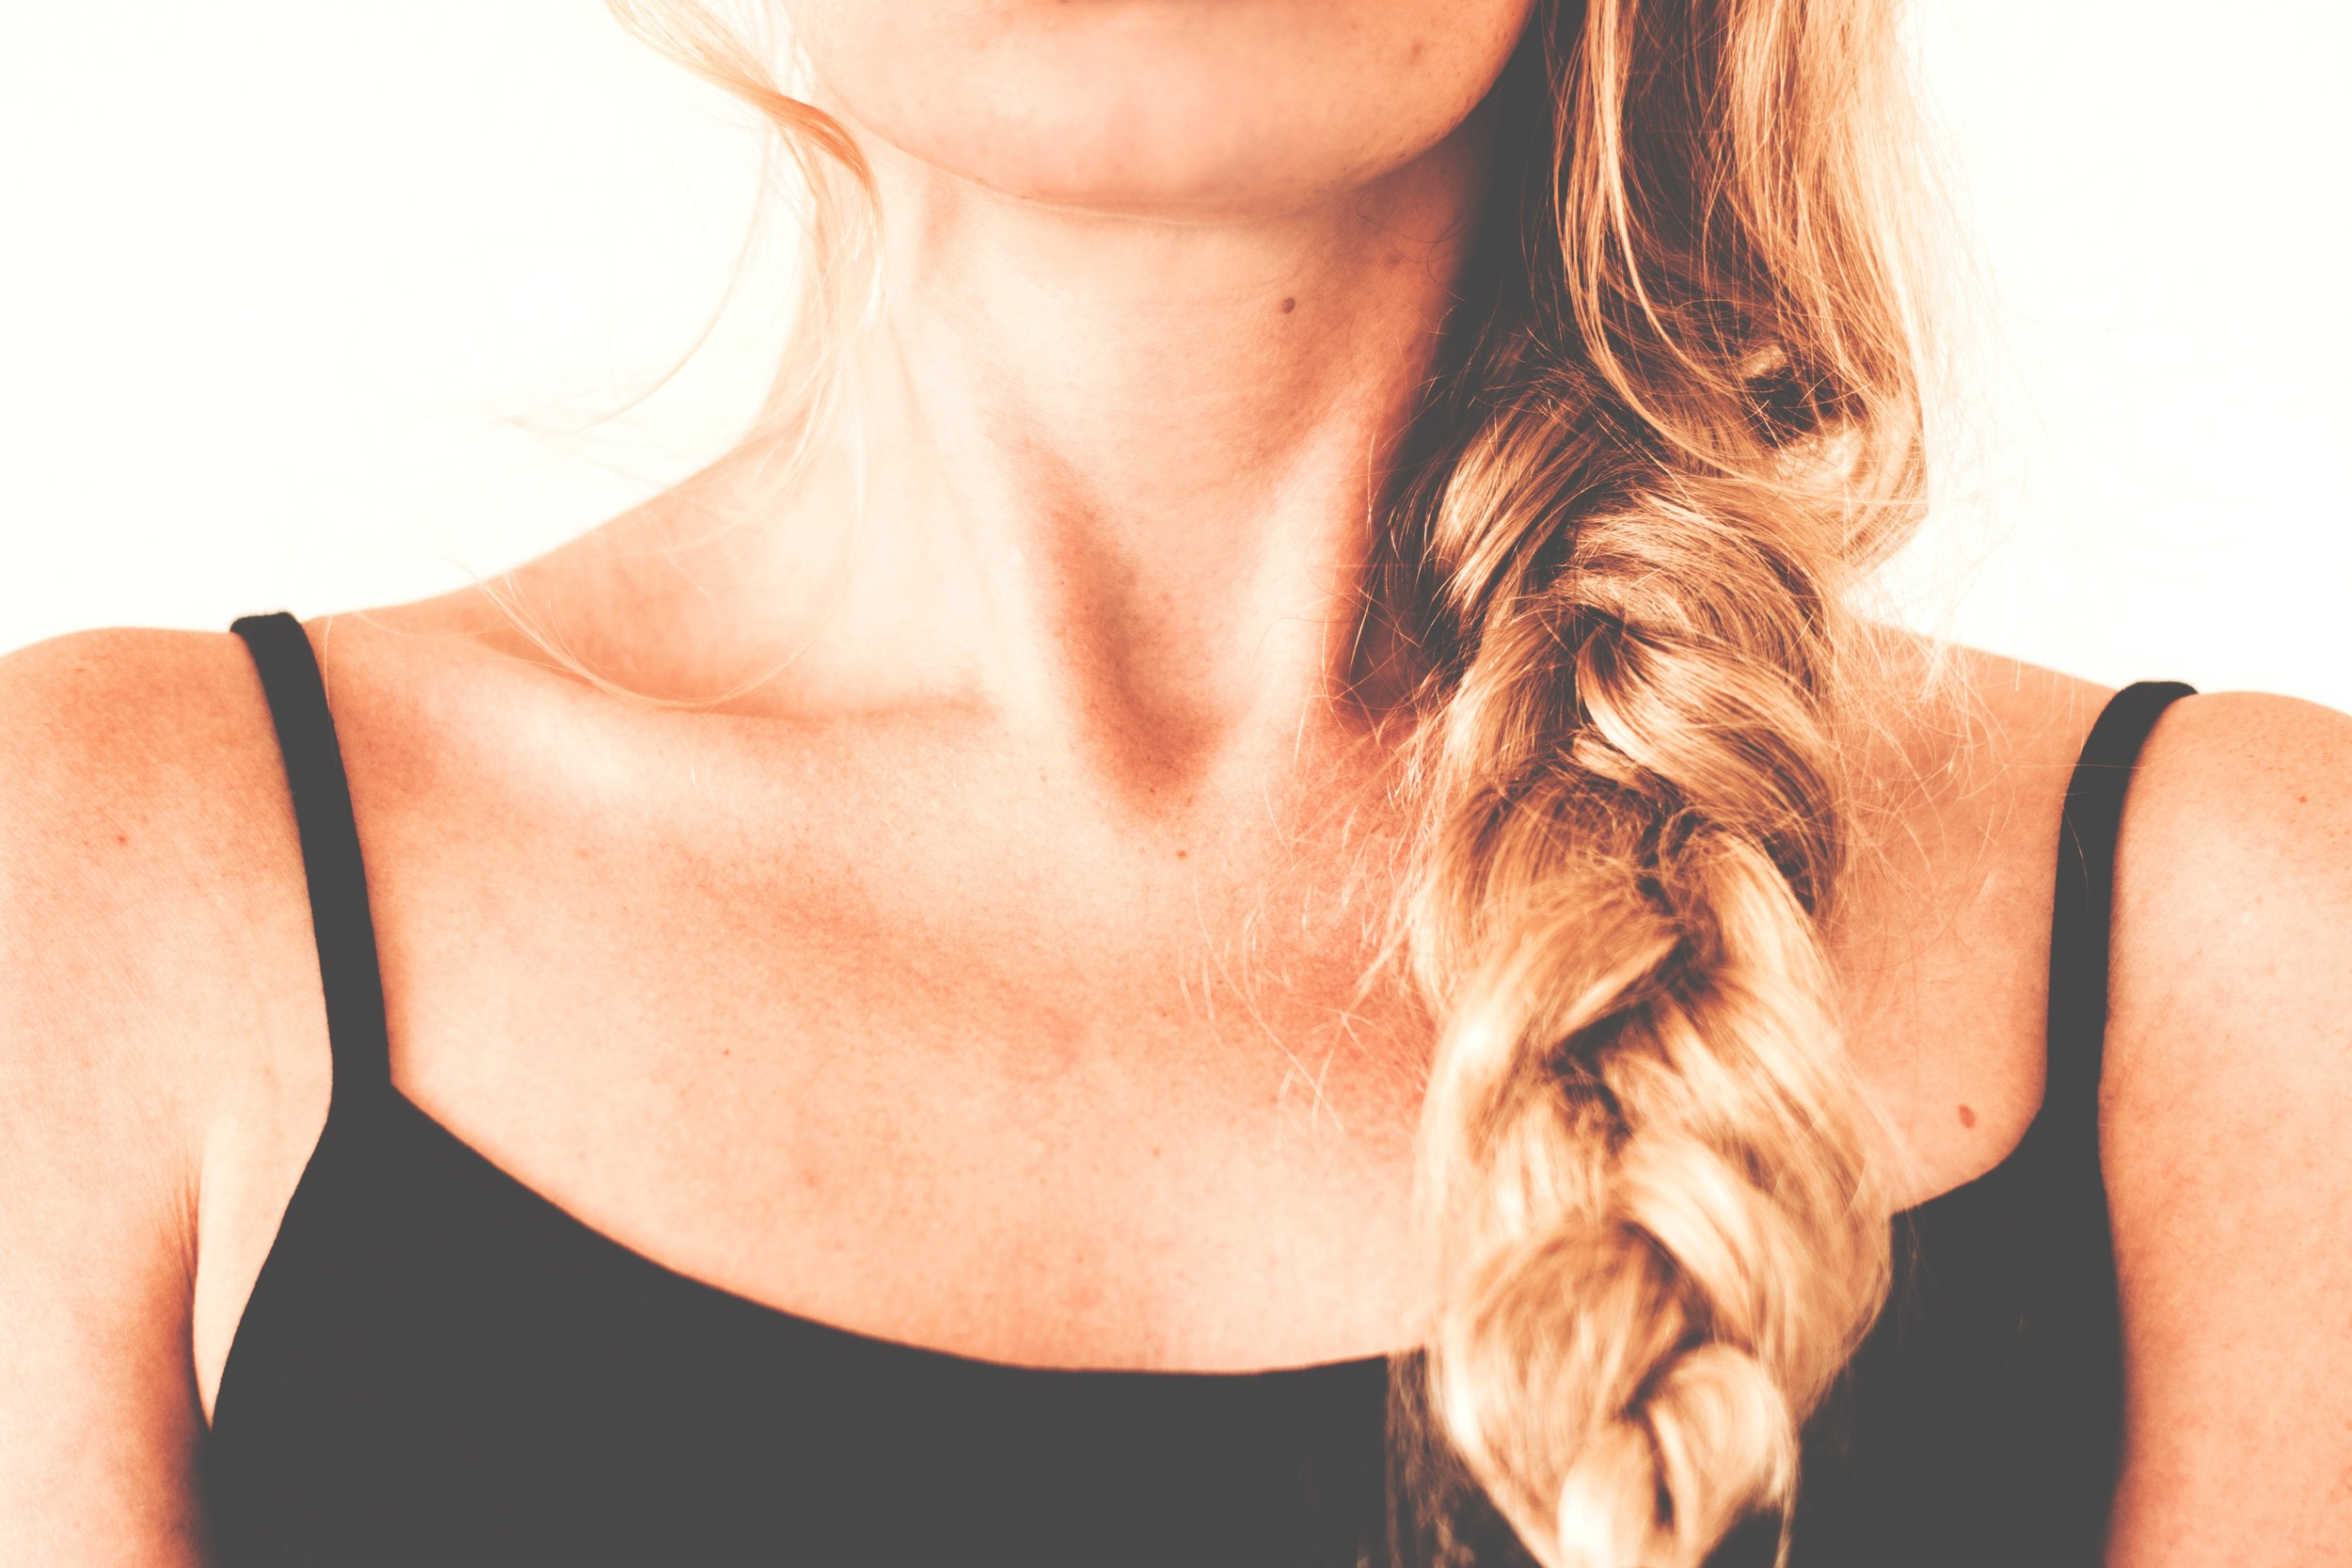 Messy Braid - If you have longer strands, consider switching up your date night look with a messy braid. Gather the length of your hair and pull it off to one side. Braid the hair that falls at the nape of your neck all the way down the remaining length of your locks. Secure the braid with a basic hair tie and then gently tug at the sides of the braid to give it a less polished, more romantic allure.